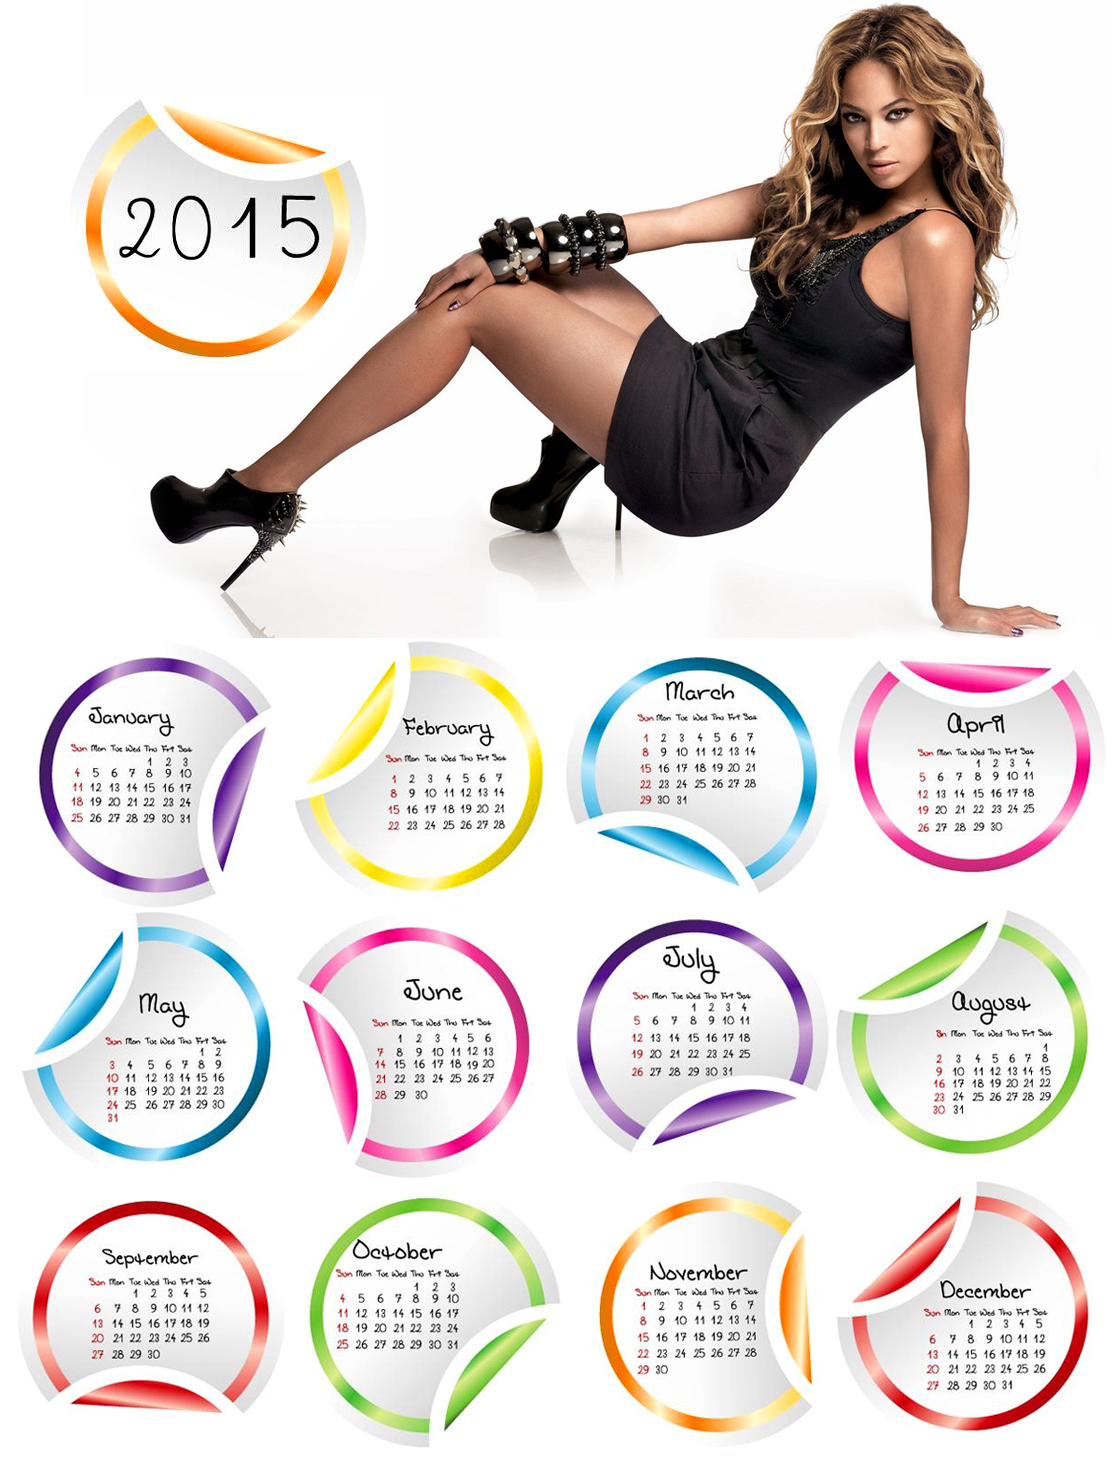 beyonce black dress wallpaper 2015 calendar